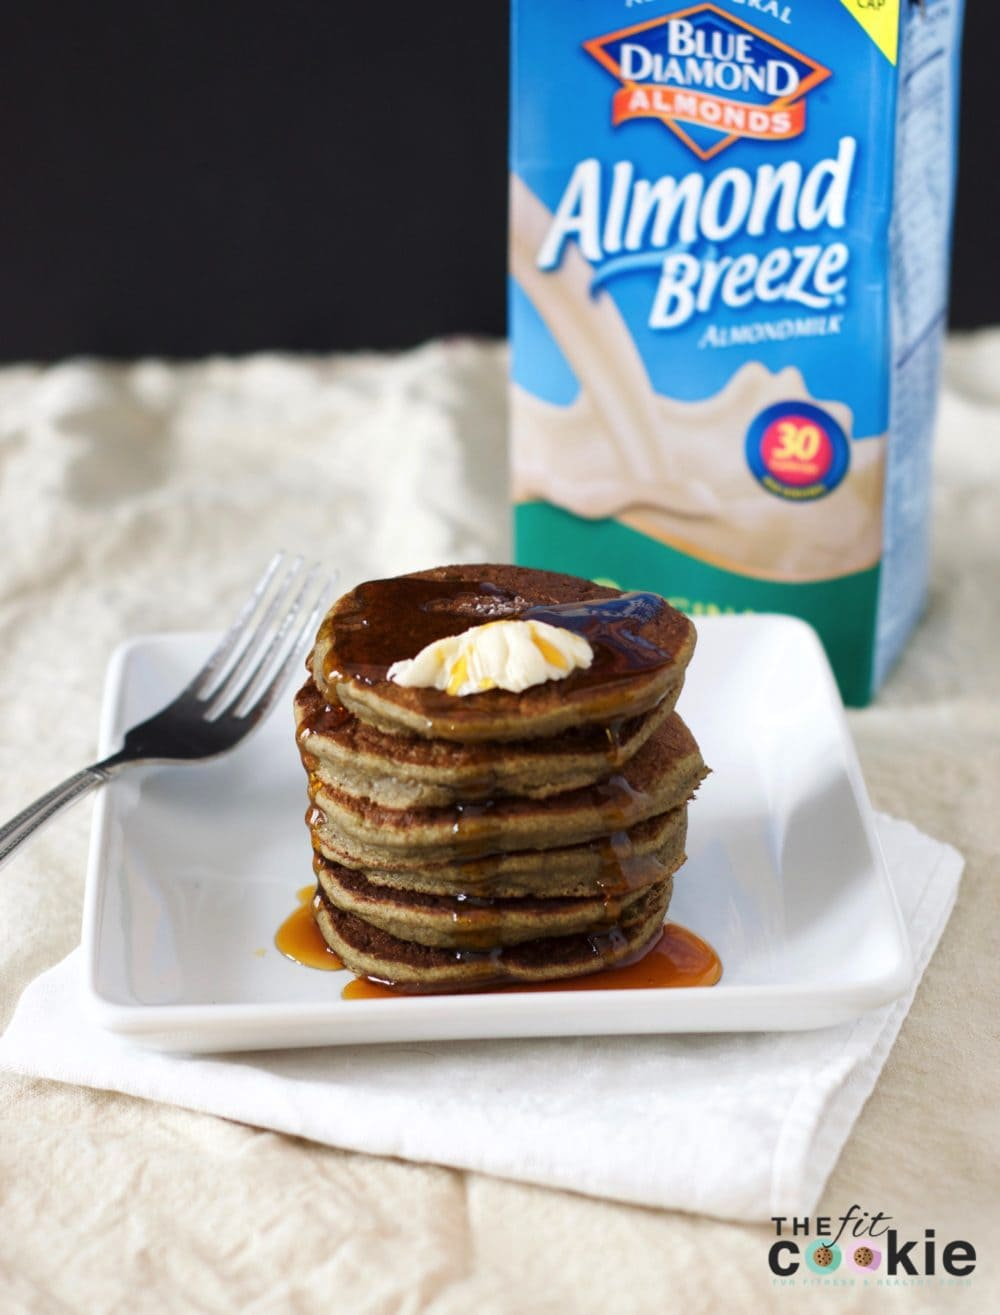 Start your breakfast off with these delicious Hemp Protein Pancakes that are add some extra protein to your morning with less sugar! These easy pancakes are gluten free, vegan, and peanut free - #ad @thefitcookie @almondbreeze #glutenfree #vegan